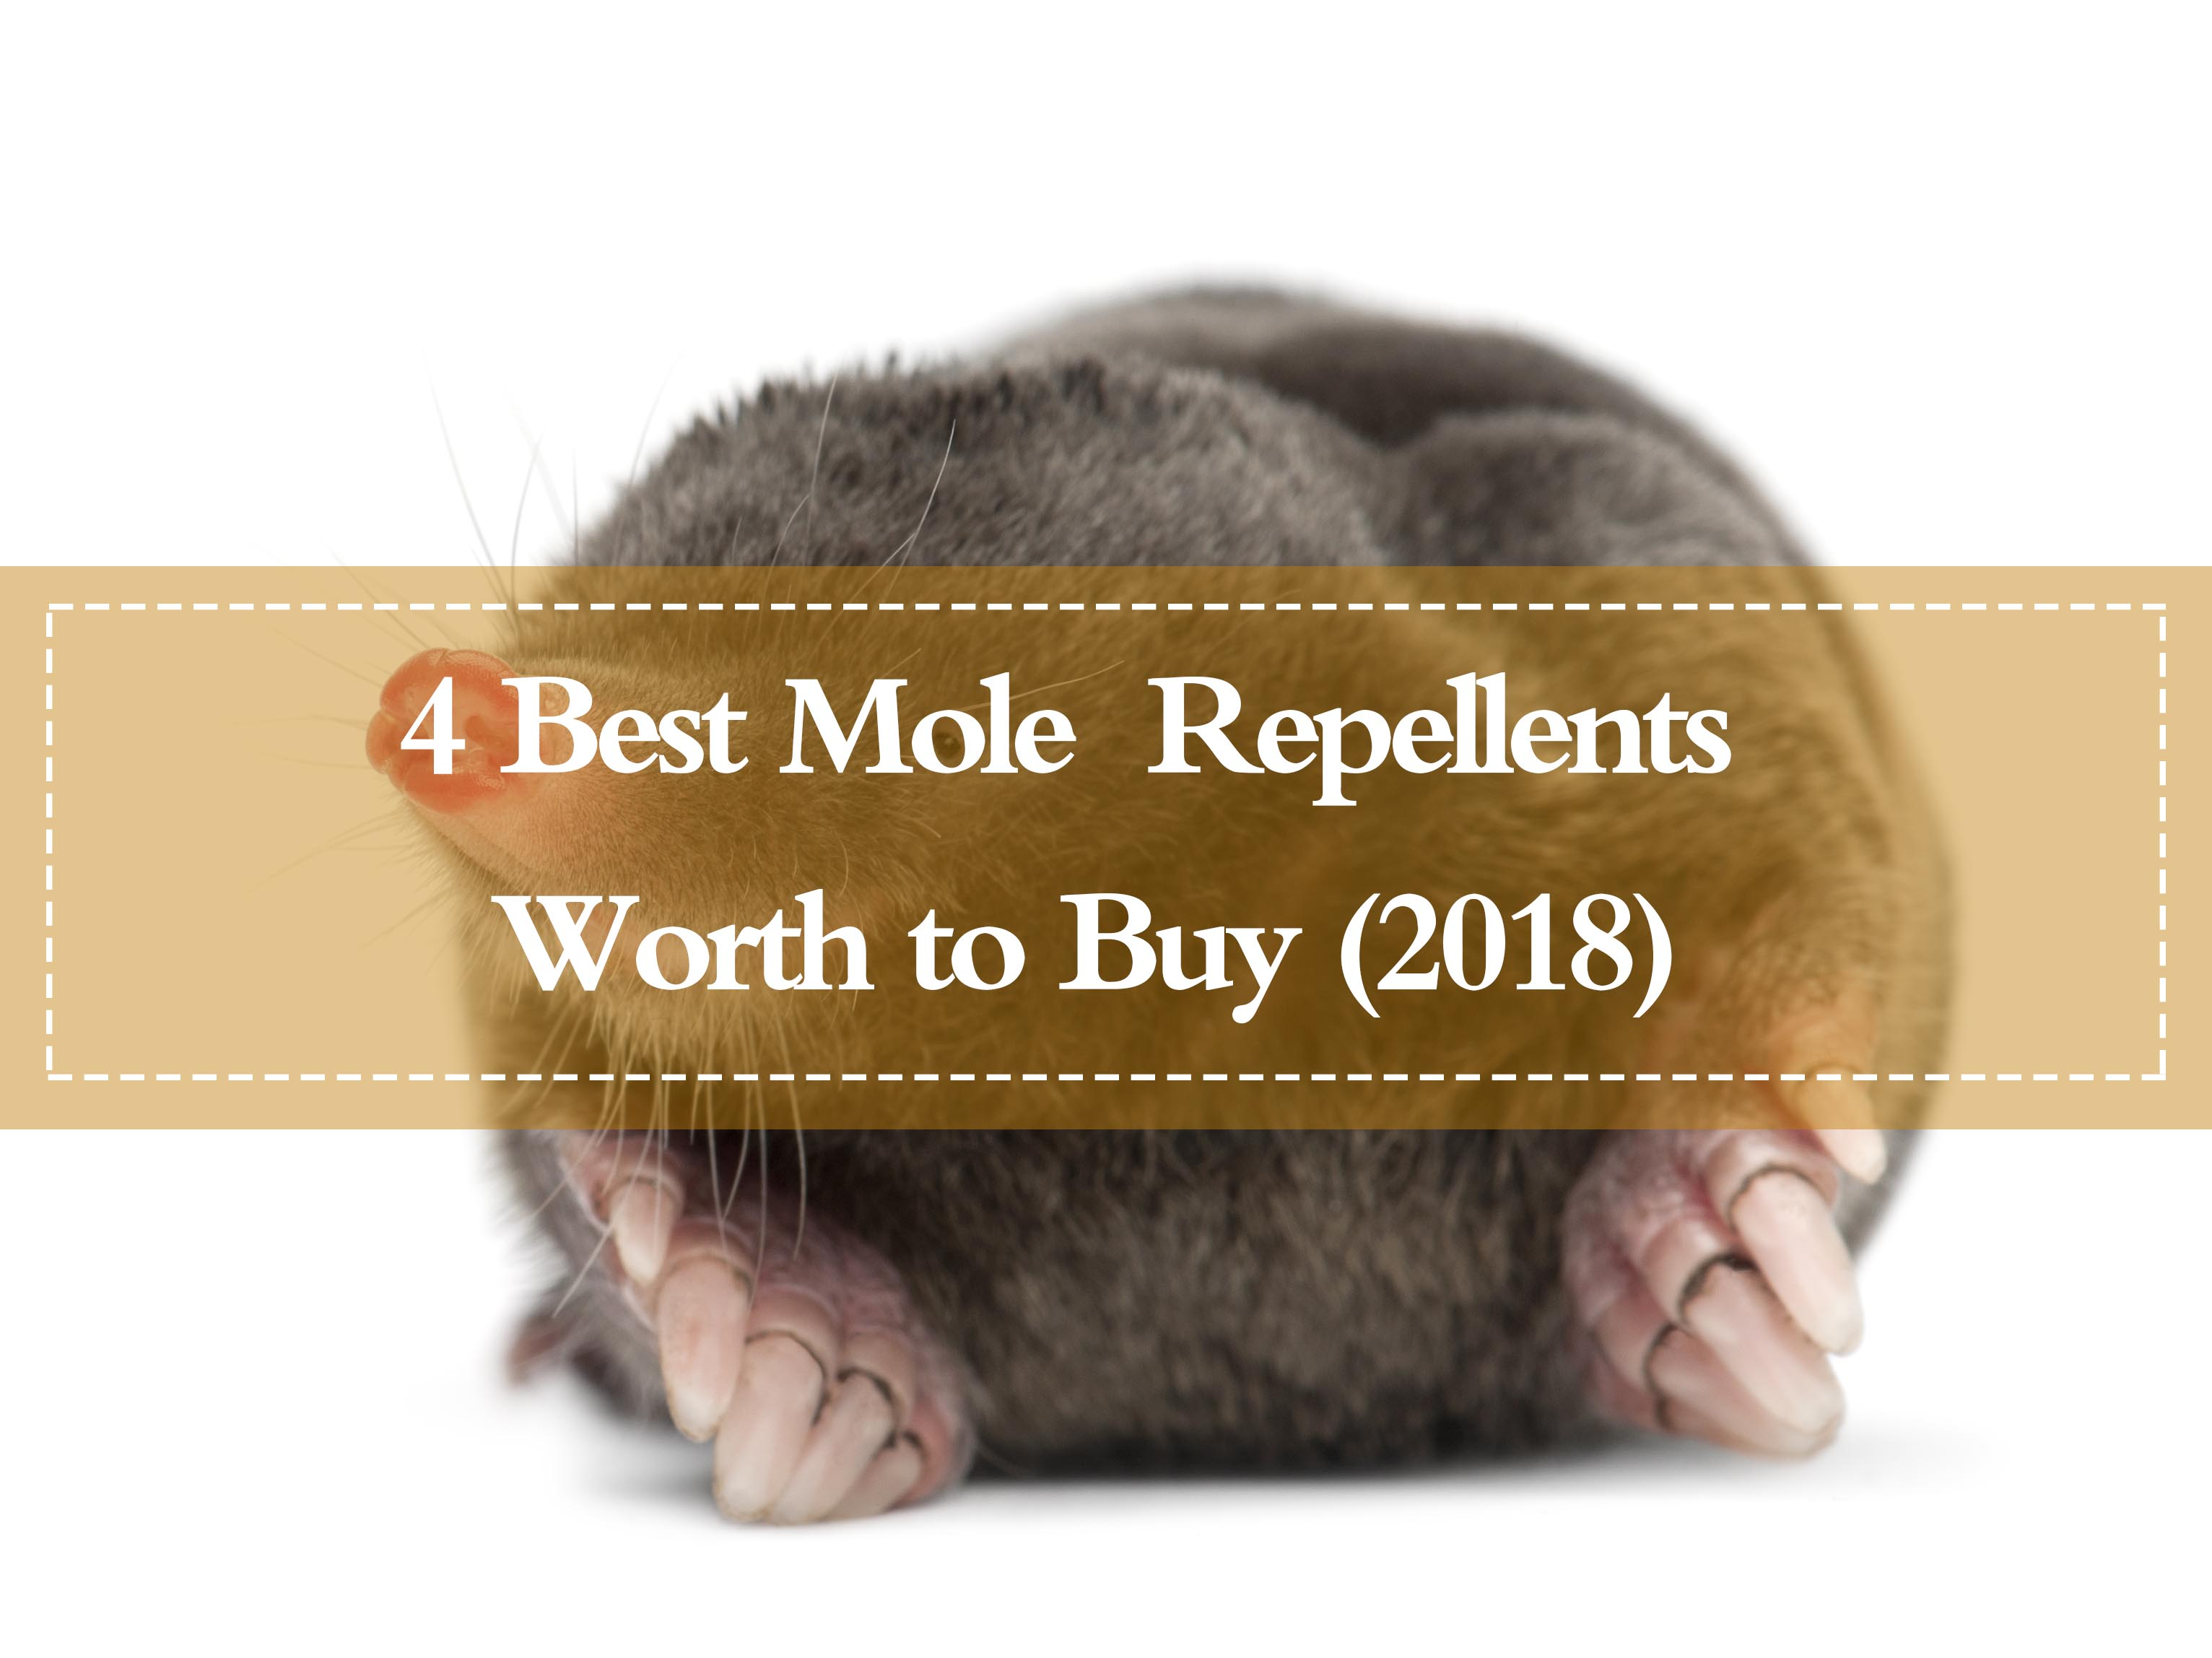 Top 4 Best Mole Repellents Worth to Buy